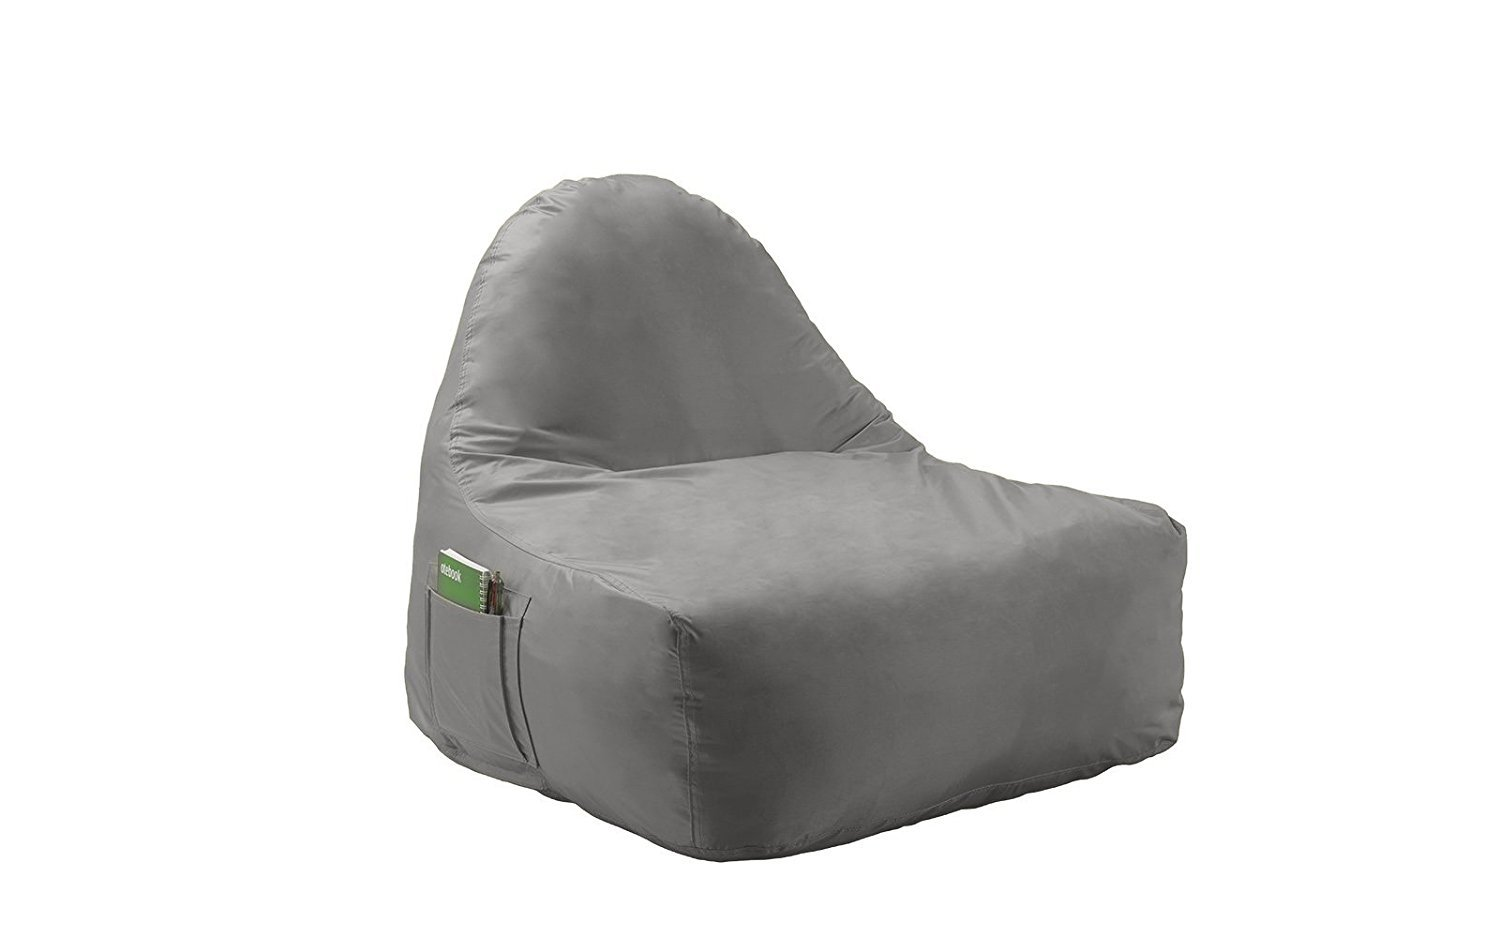 New 31  inch Lazy Lounge Compressed Foam Waterproof Gaming Chair Bean Bag with Pockets for Kids (Grey) - Walmart.com  sc 1 st  Walmart : bean bag lounge chair - lorbestier.org